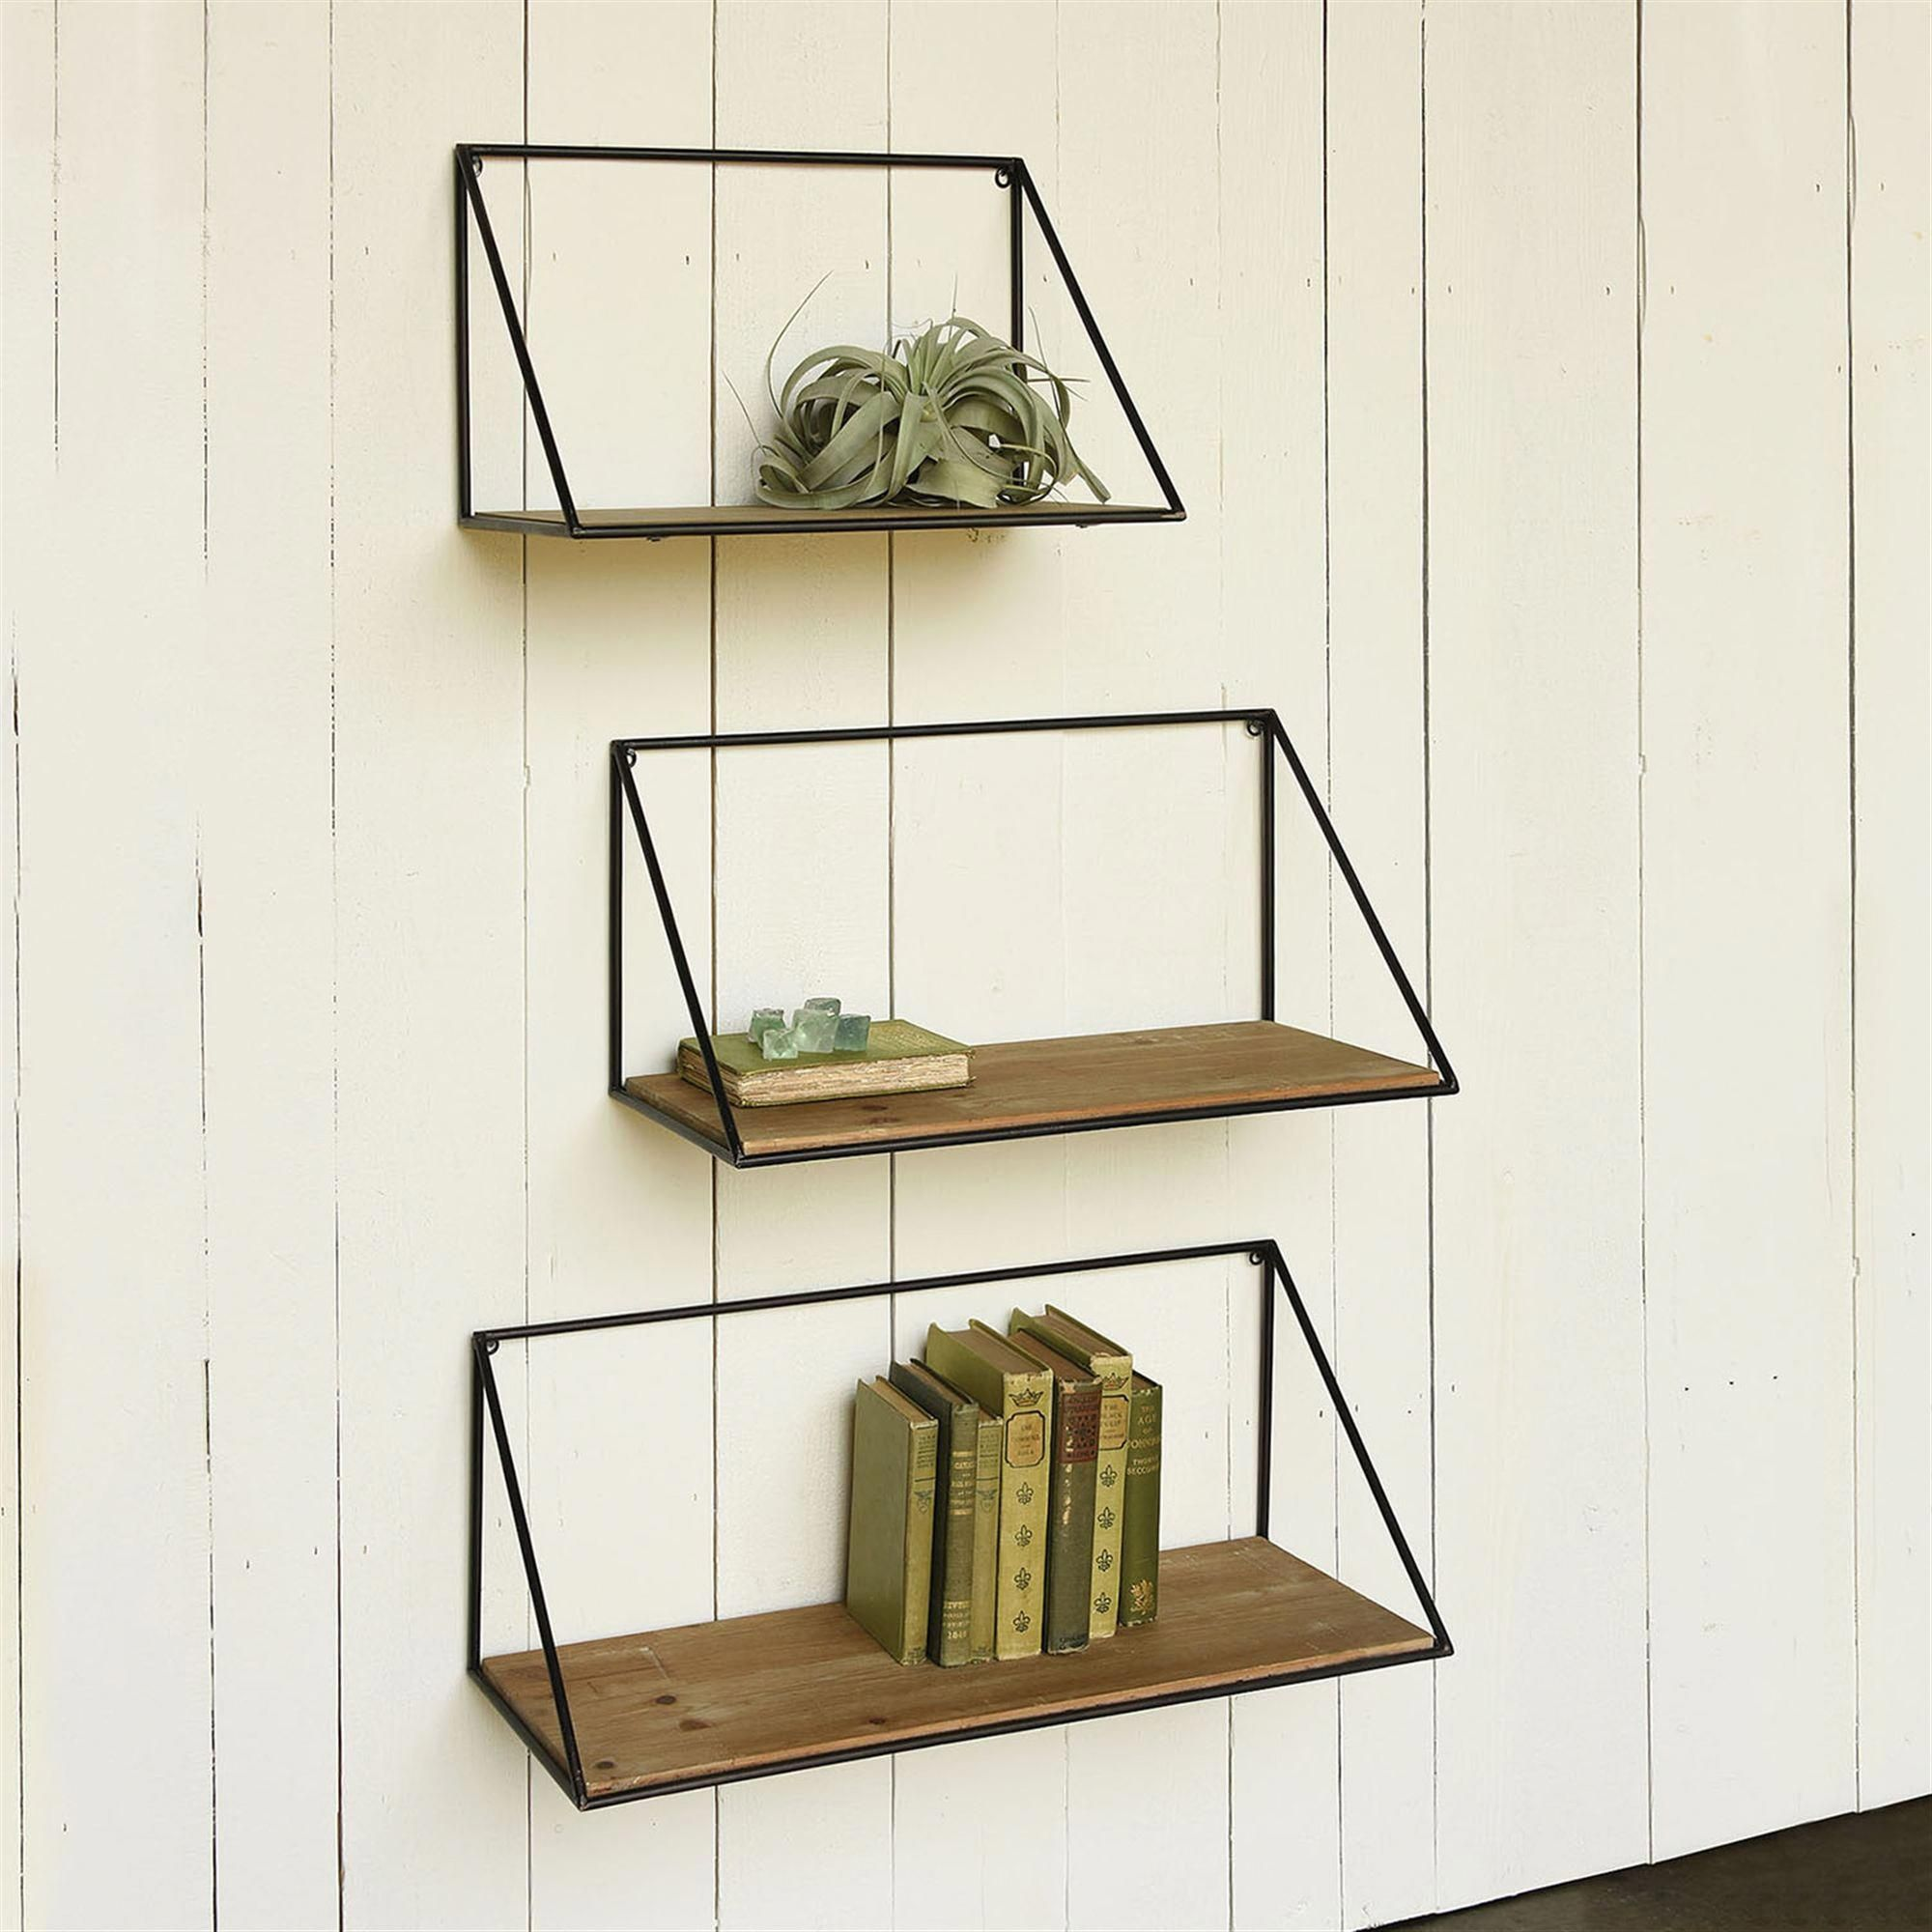 Crafted of iron and wood, the Hull Shelves have a